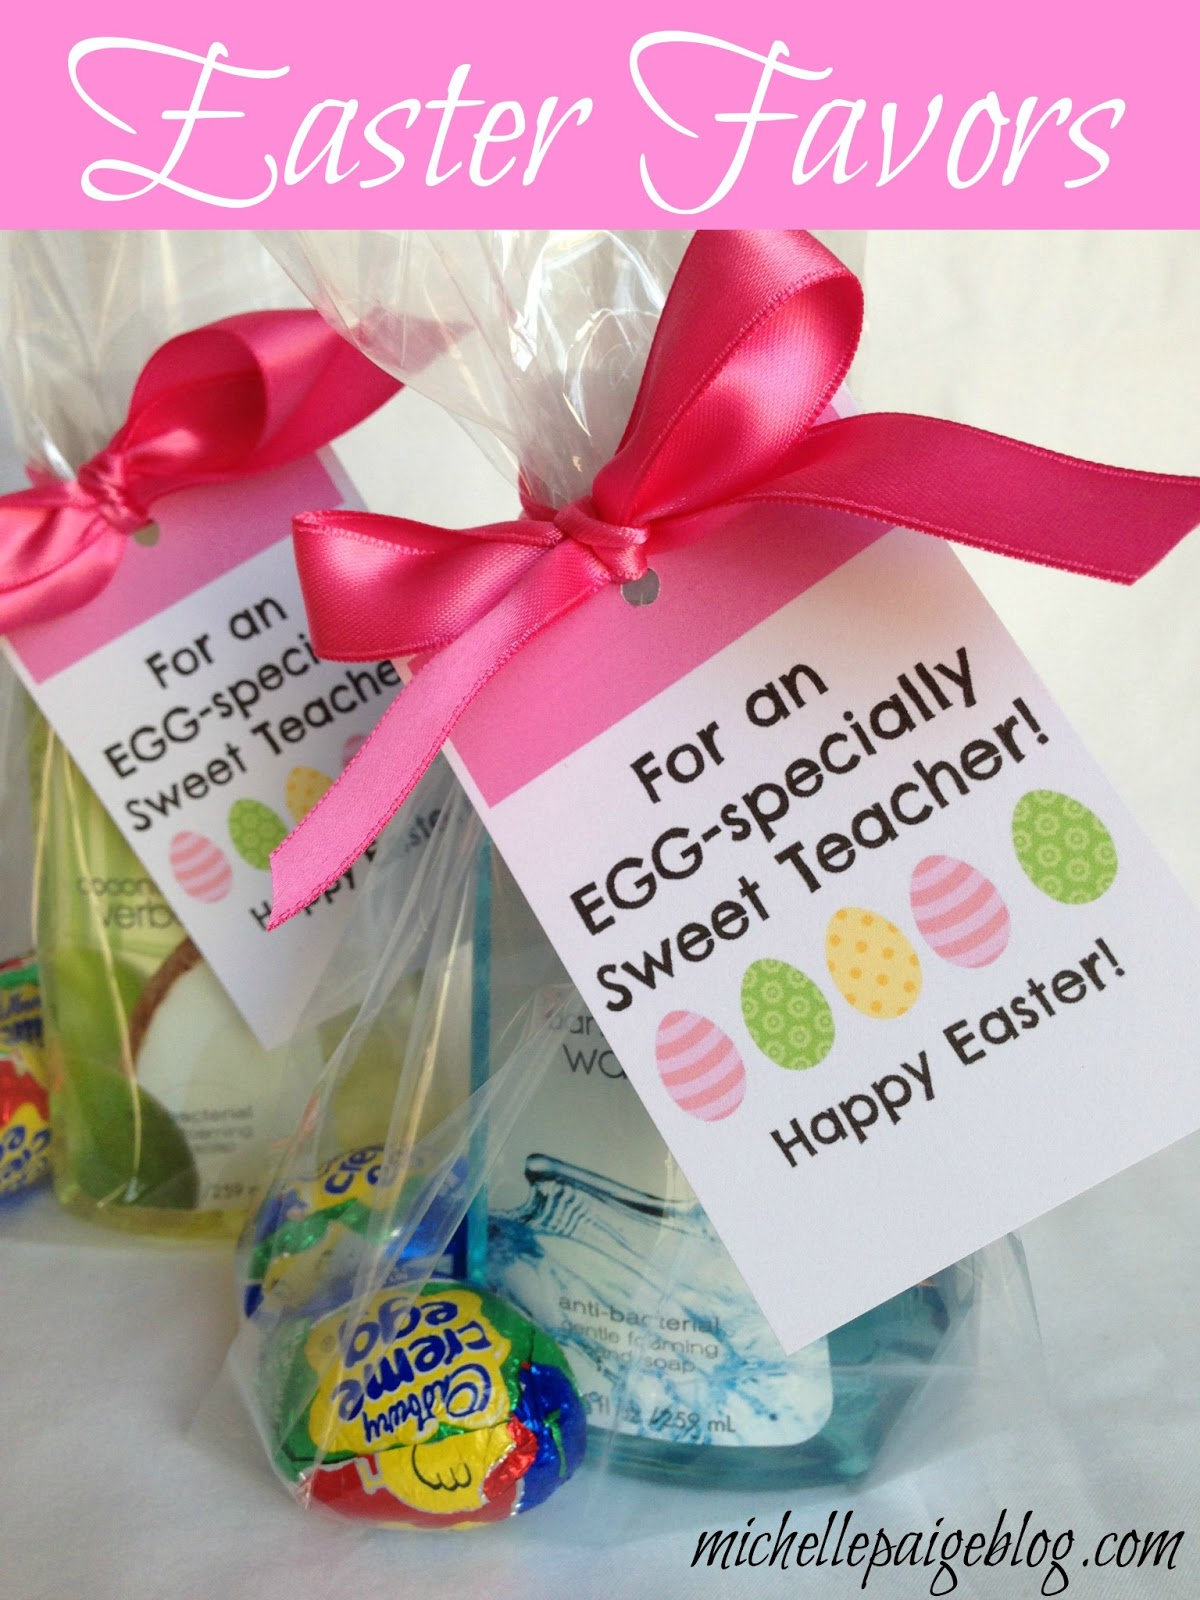 Michelle paige blogs easter favors for teachers friends and family easter favors for teachers friends and family negle Gallery